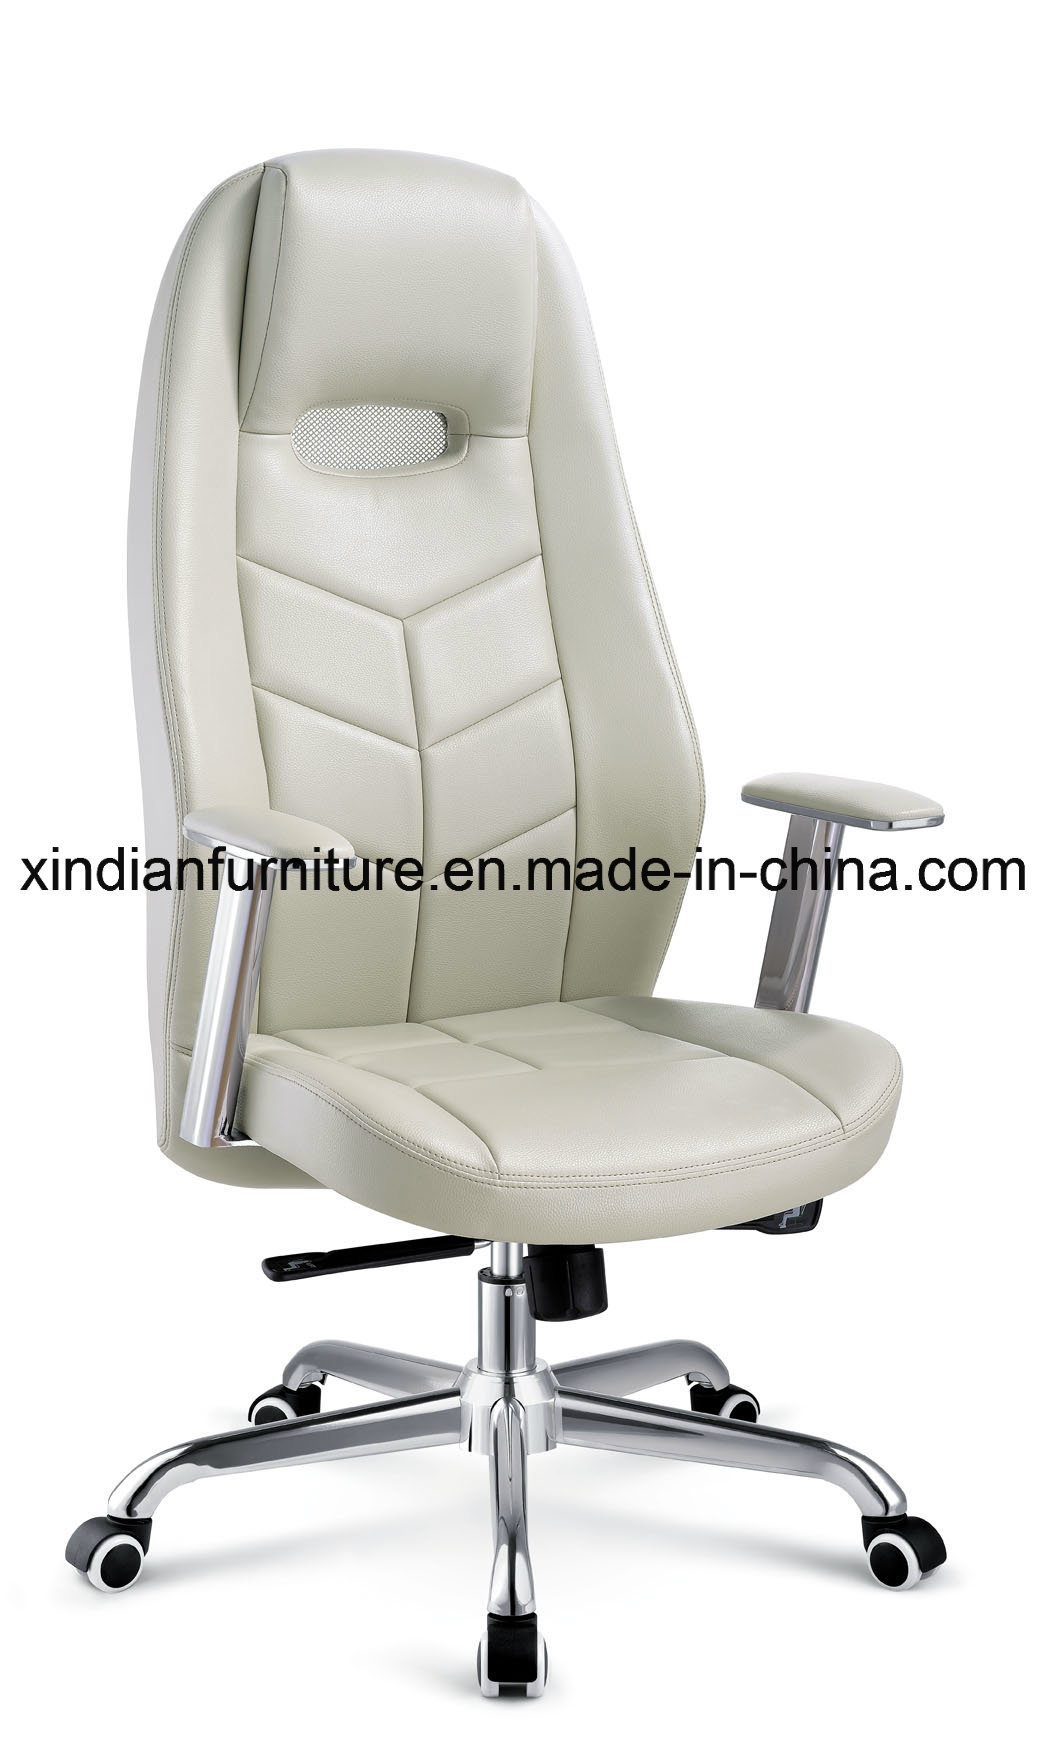 Adjustable Reclining Office Chair (A8060)